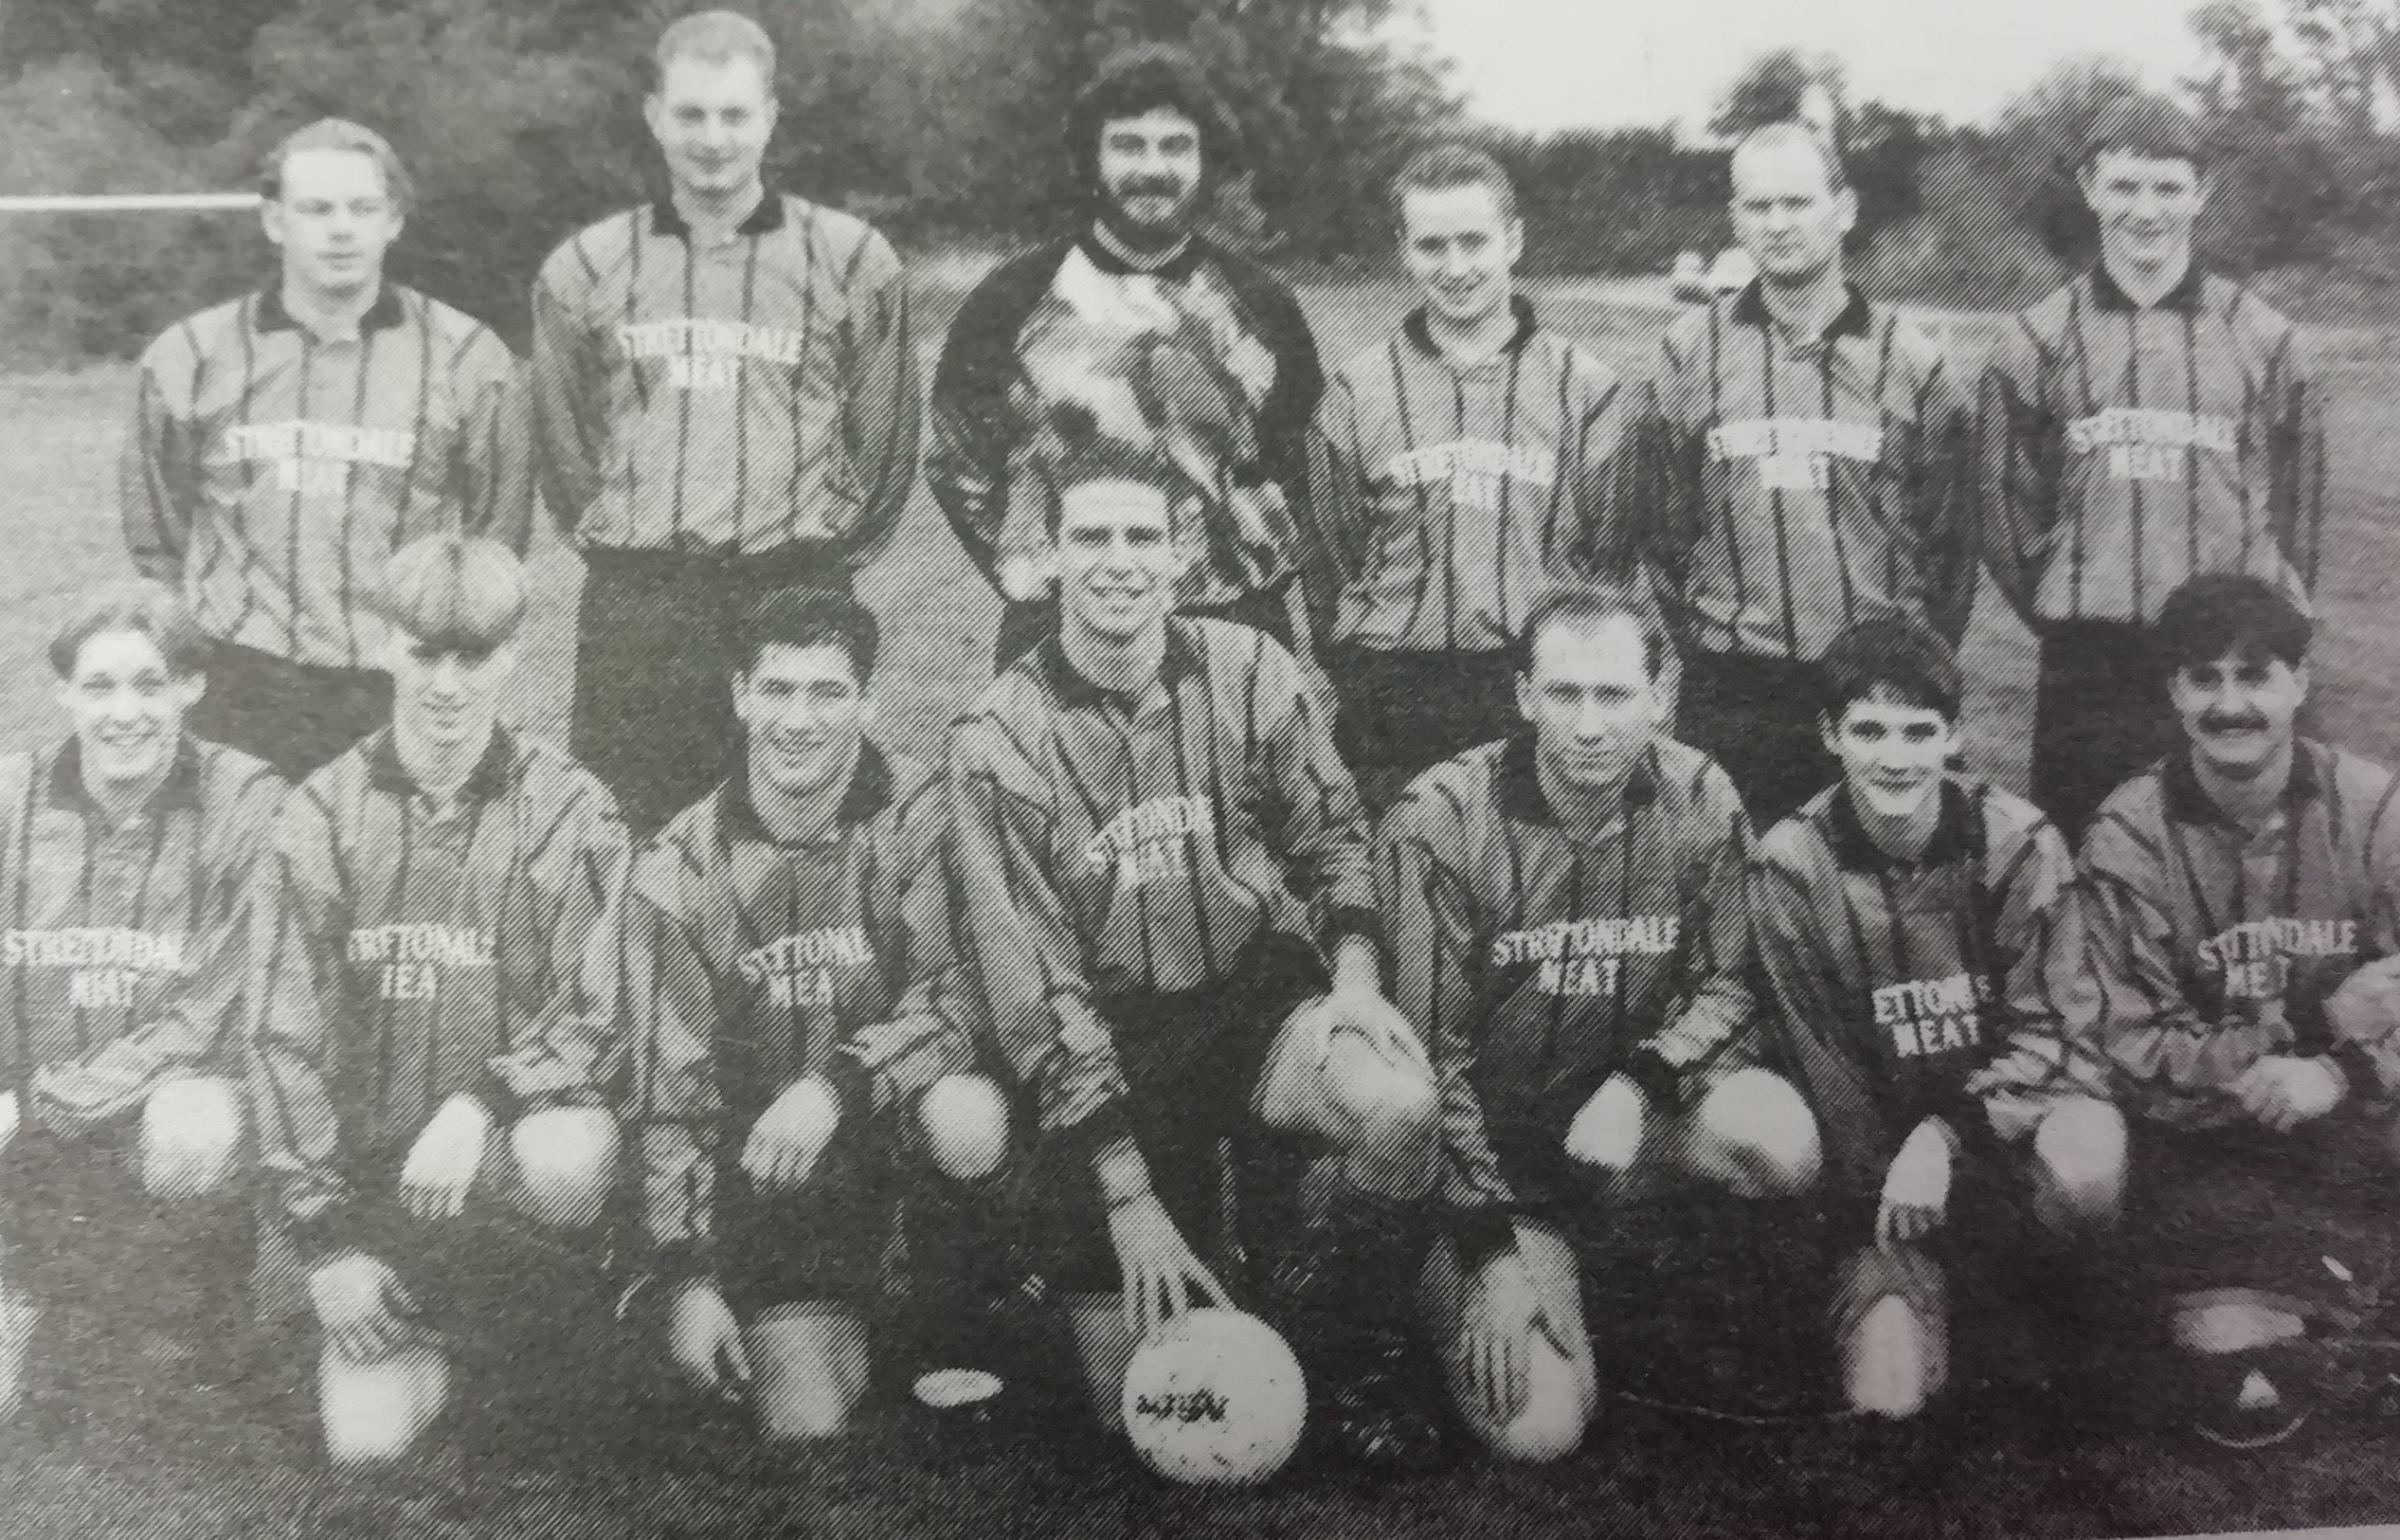 The Clun Valley Football Club 25 years ago